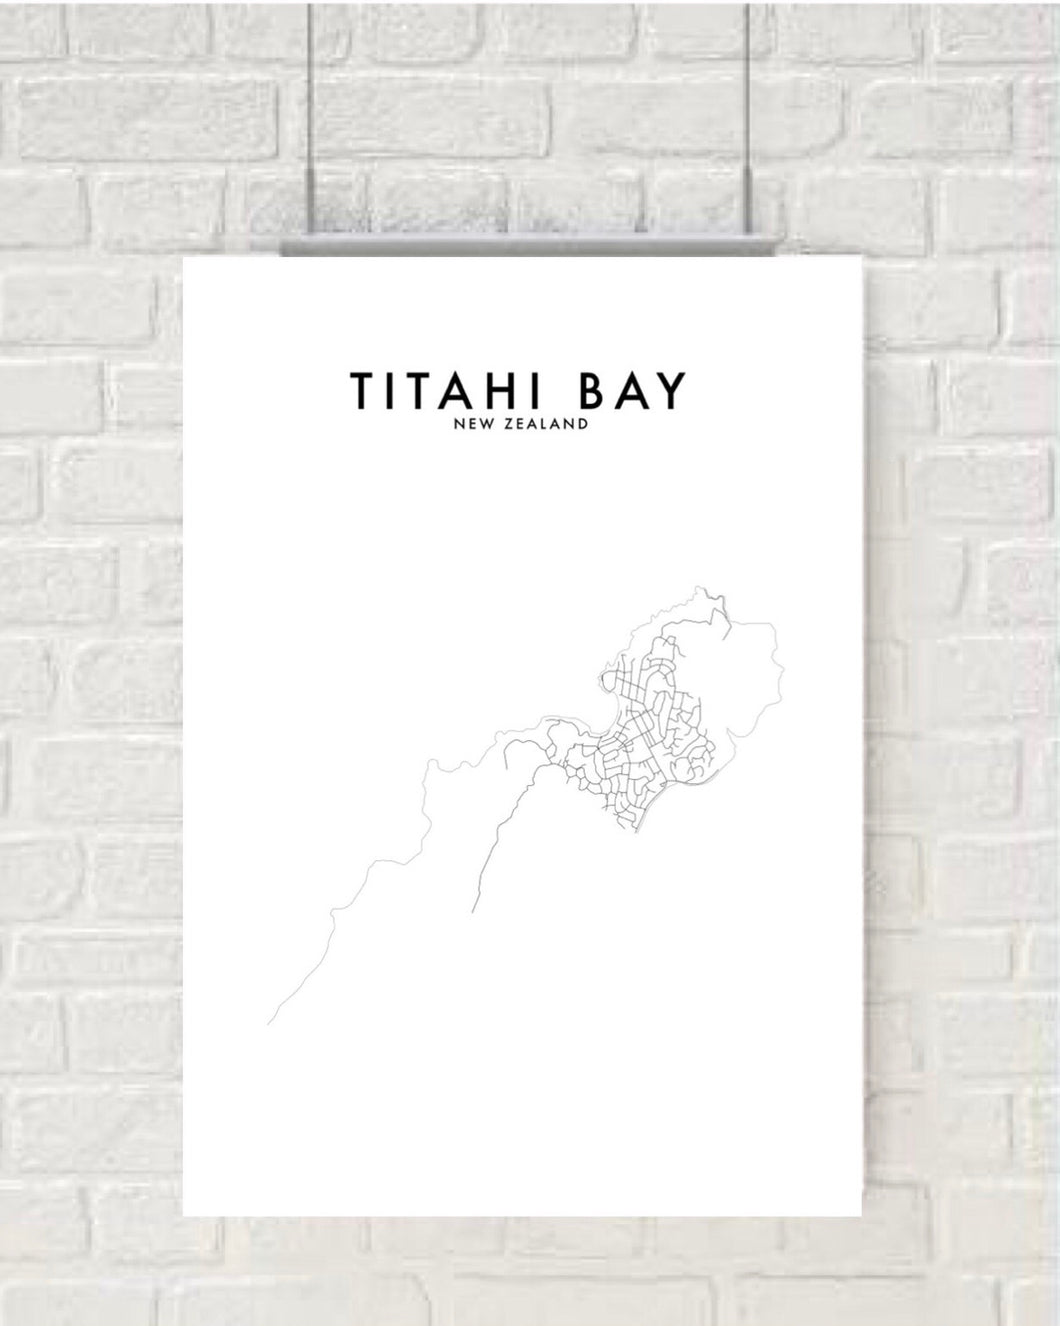 TITAHI BAY HOMETOWN PRINT